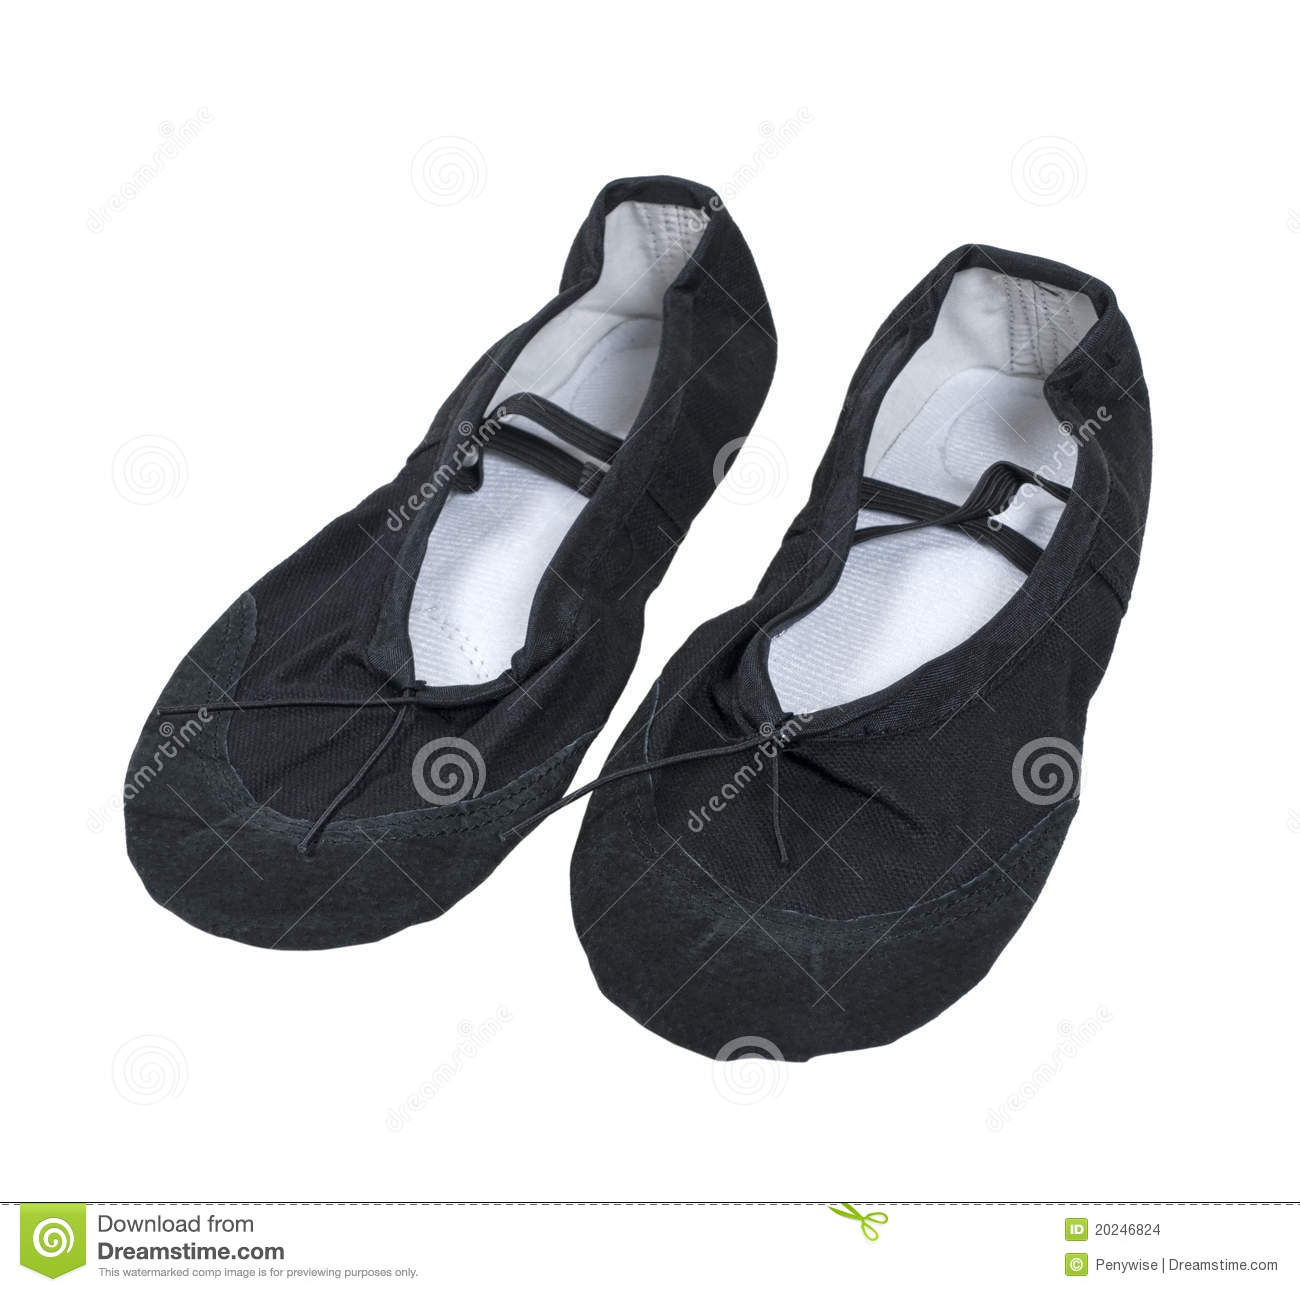 Black ballet slippers worn while dancing ballet.